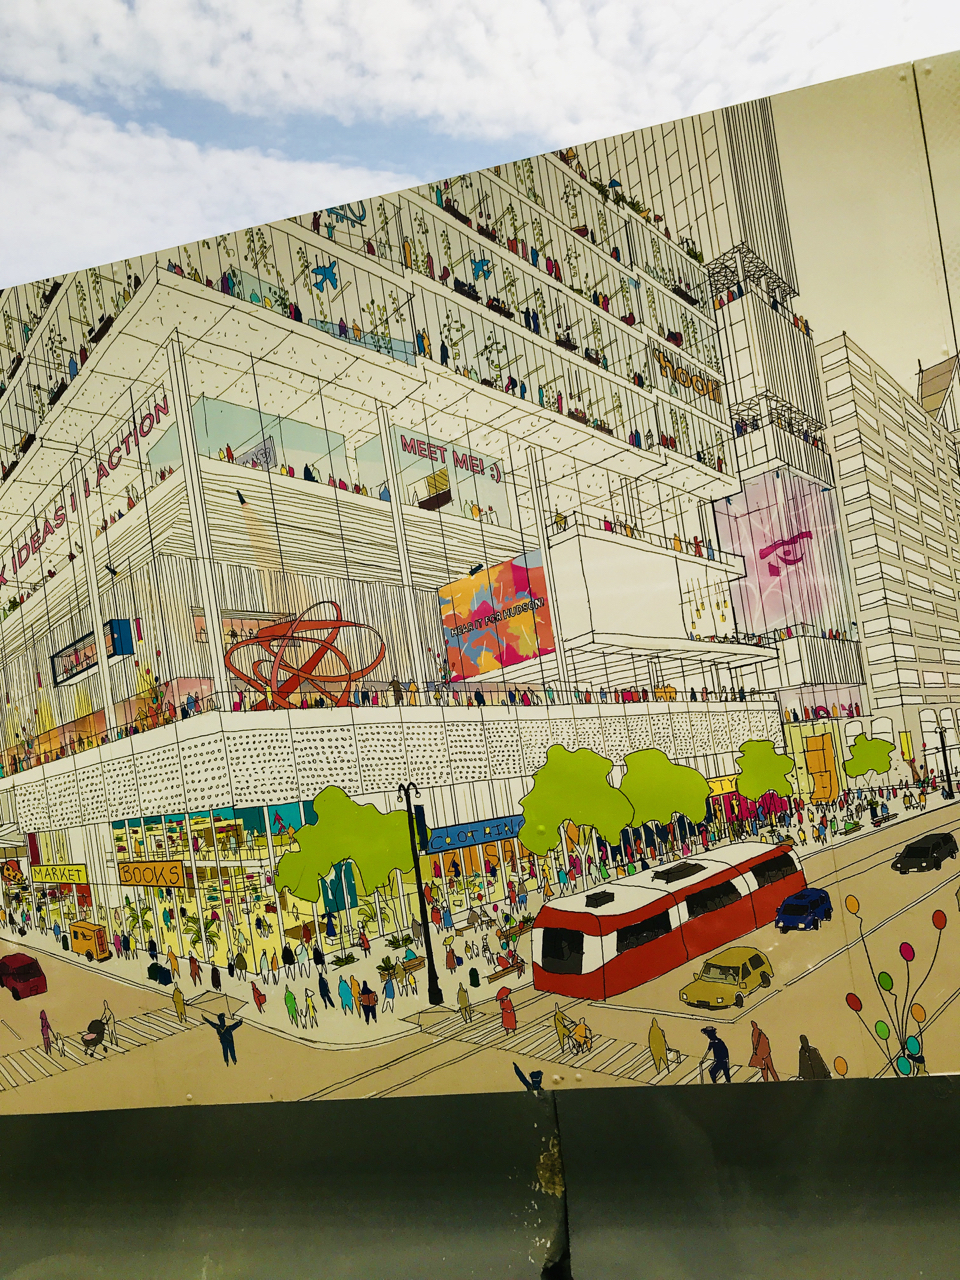 The Drawings for a Mixed-Use Space where the Hudson's Department Store once stood.